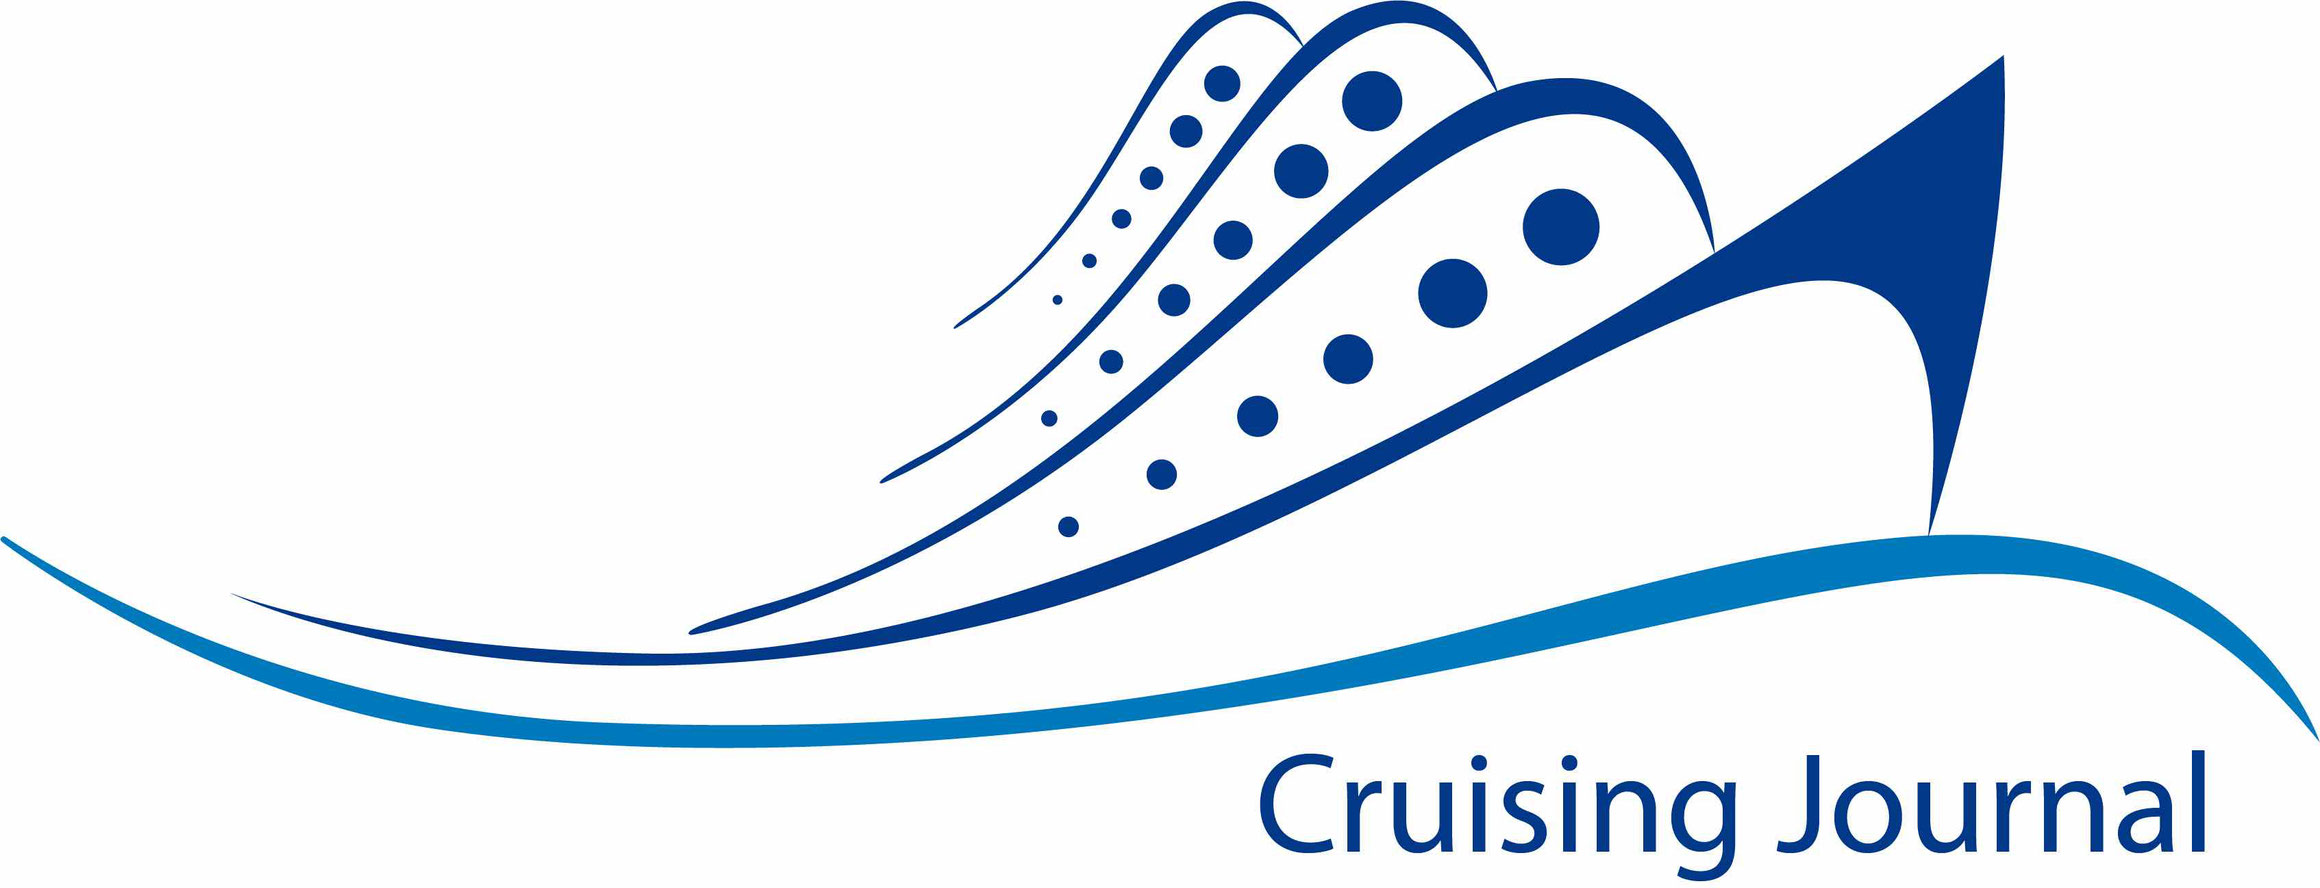 Cruising Journal